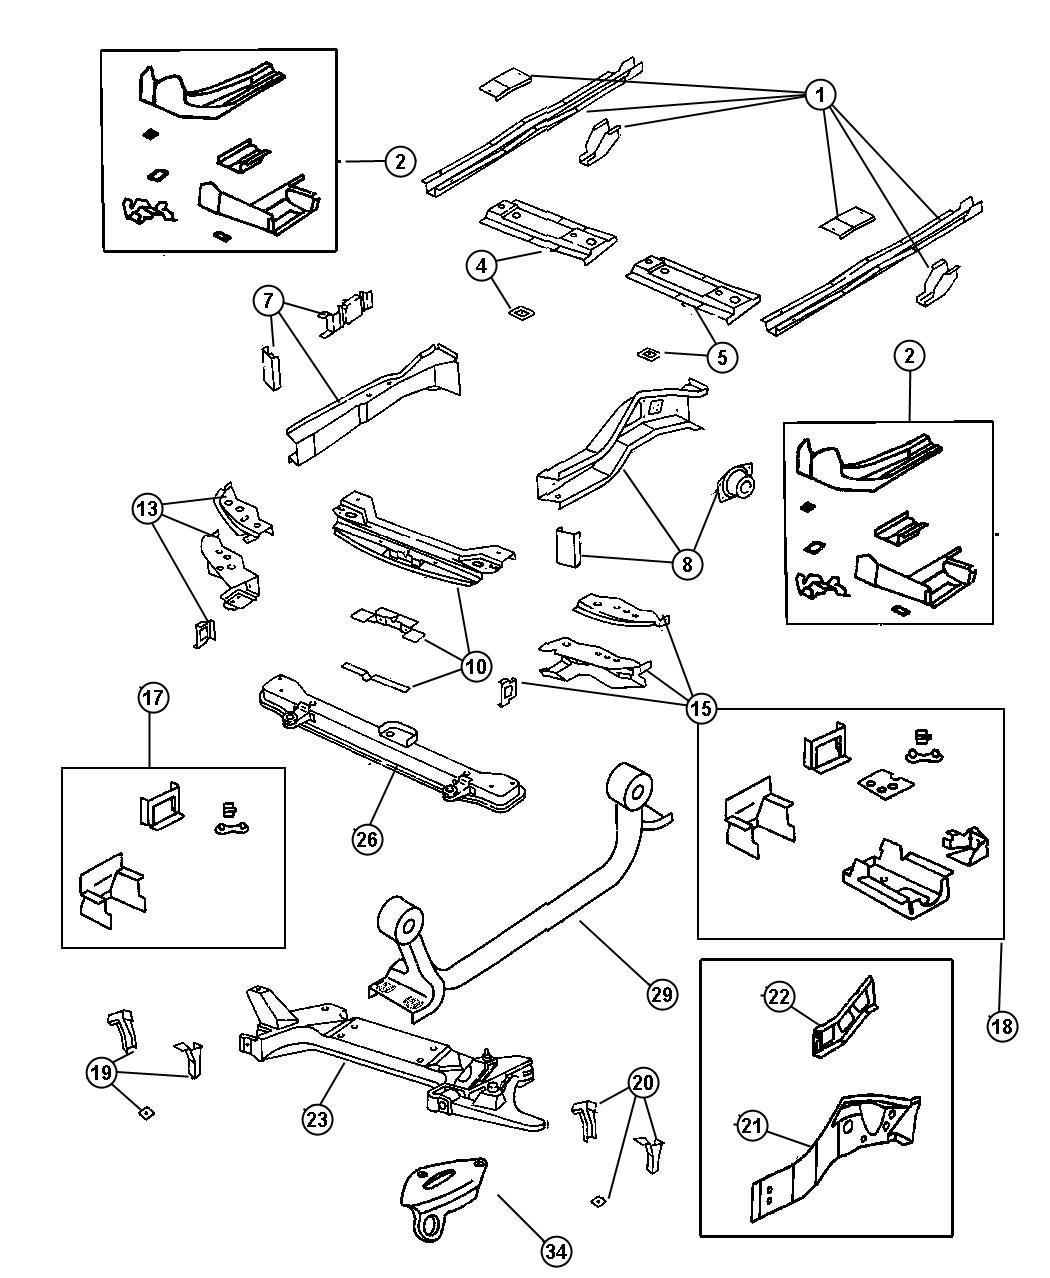 1999 plymouth breeze front suspension diagram  plymouth